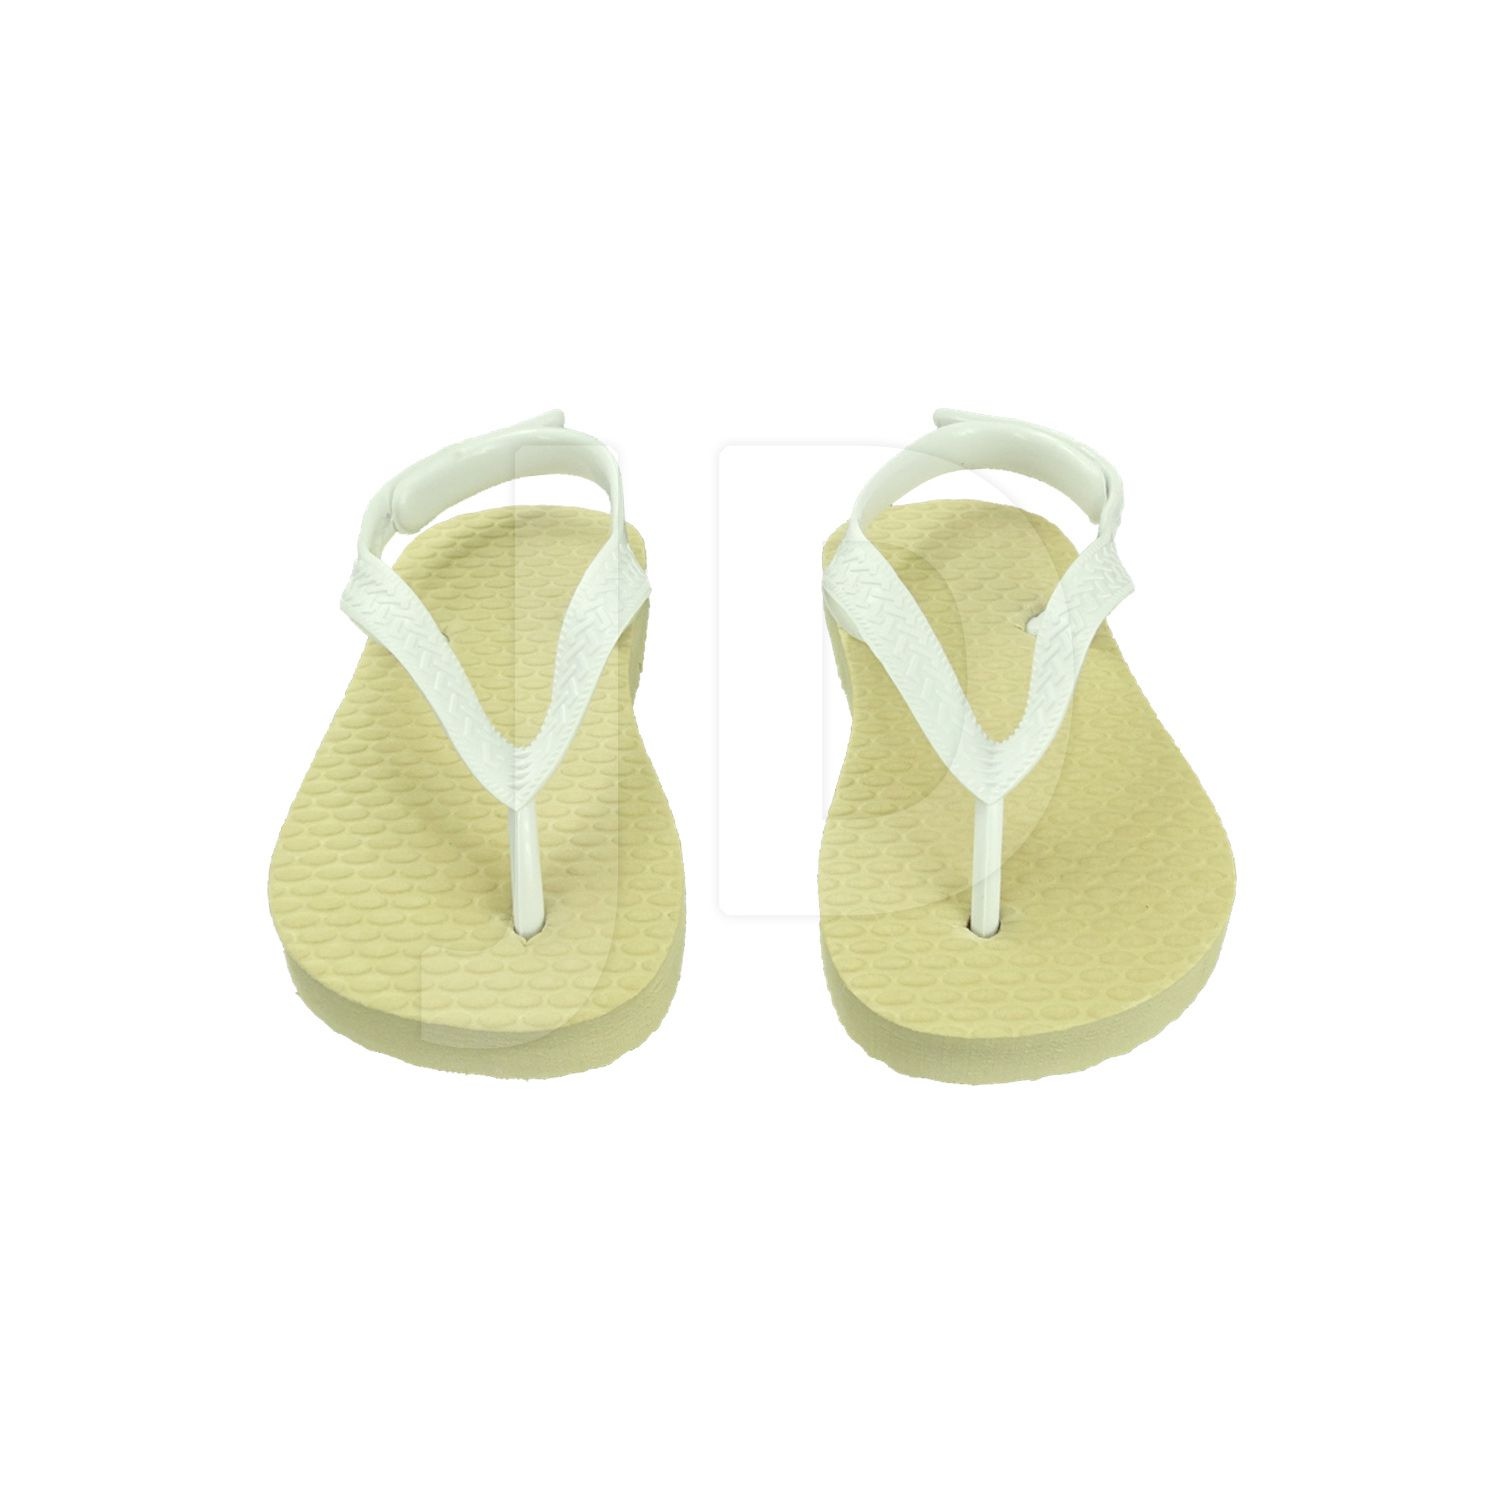 Chinelo Liso - Para Transfer e Silk - Baby - Bege